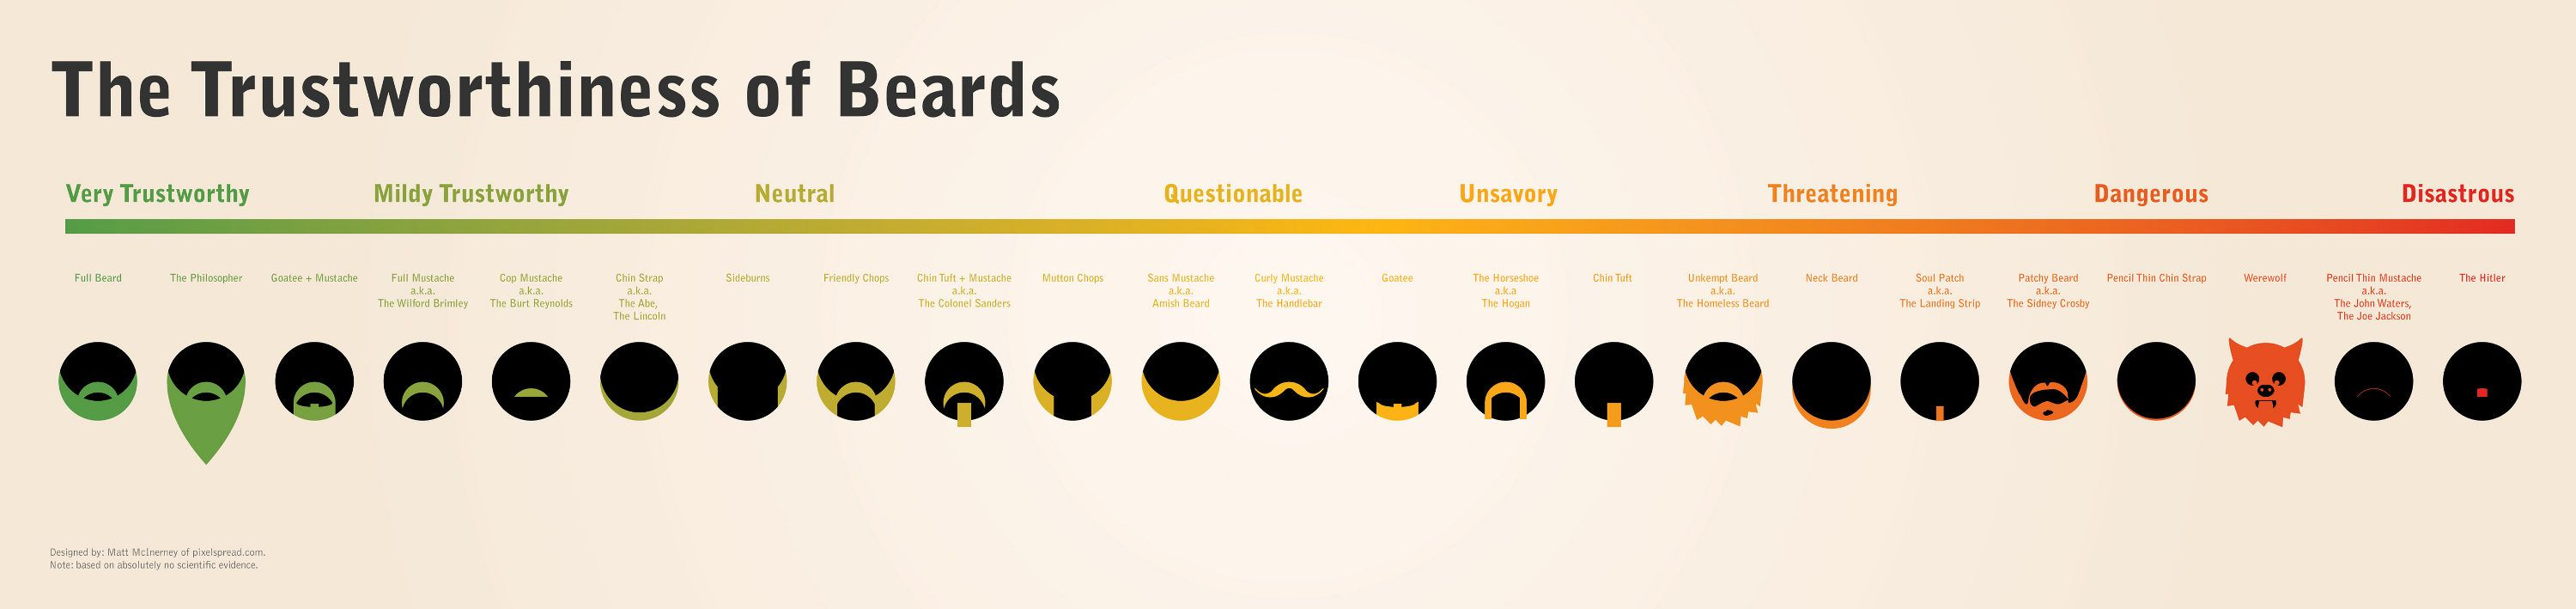 The Trustworthiness of Beards, an Infographic - E-Verse ...